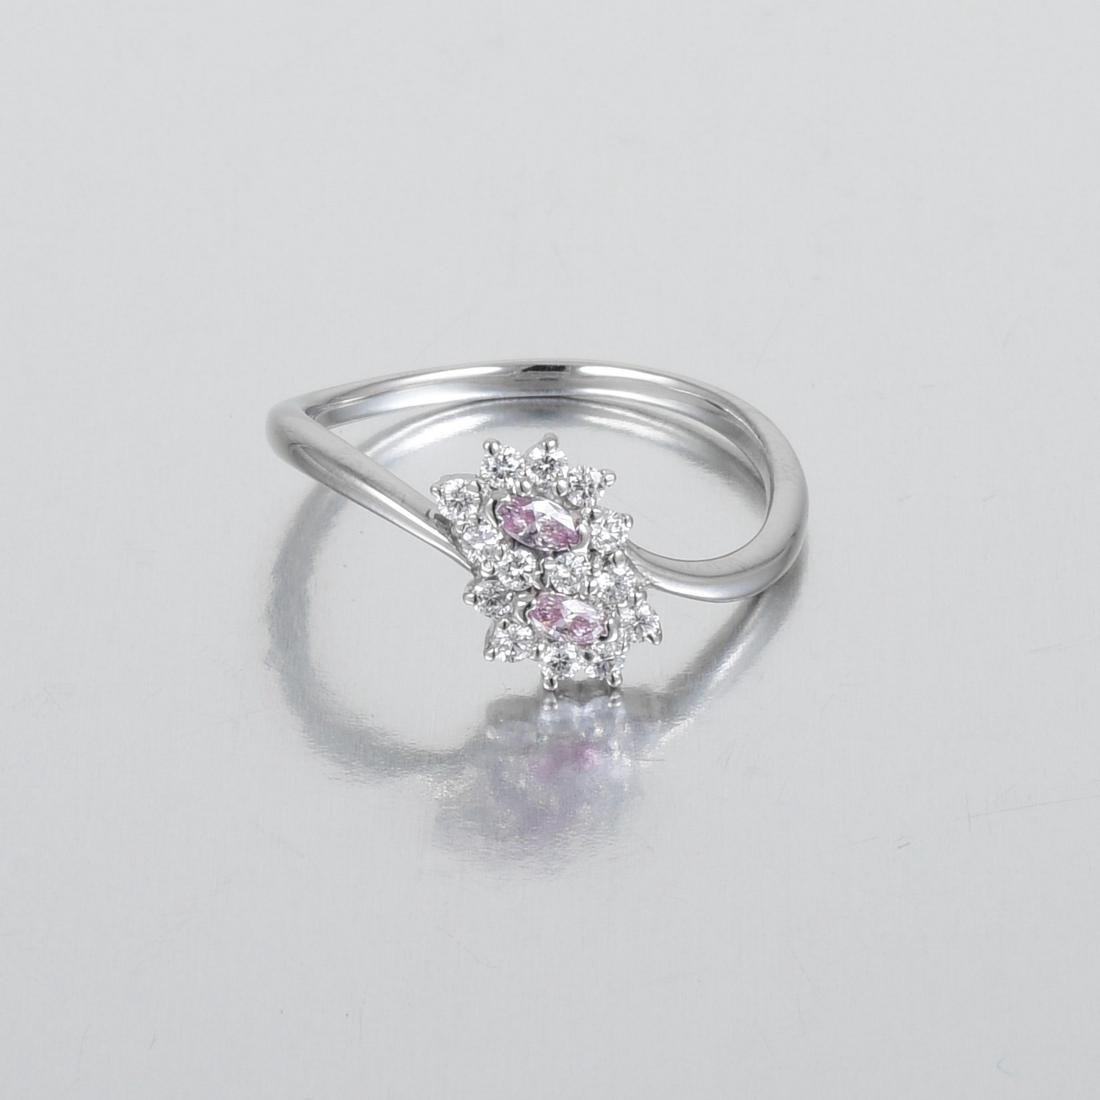 A Natural Pink Diamond Ring - 2